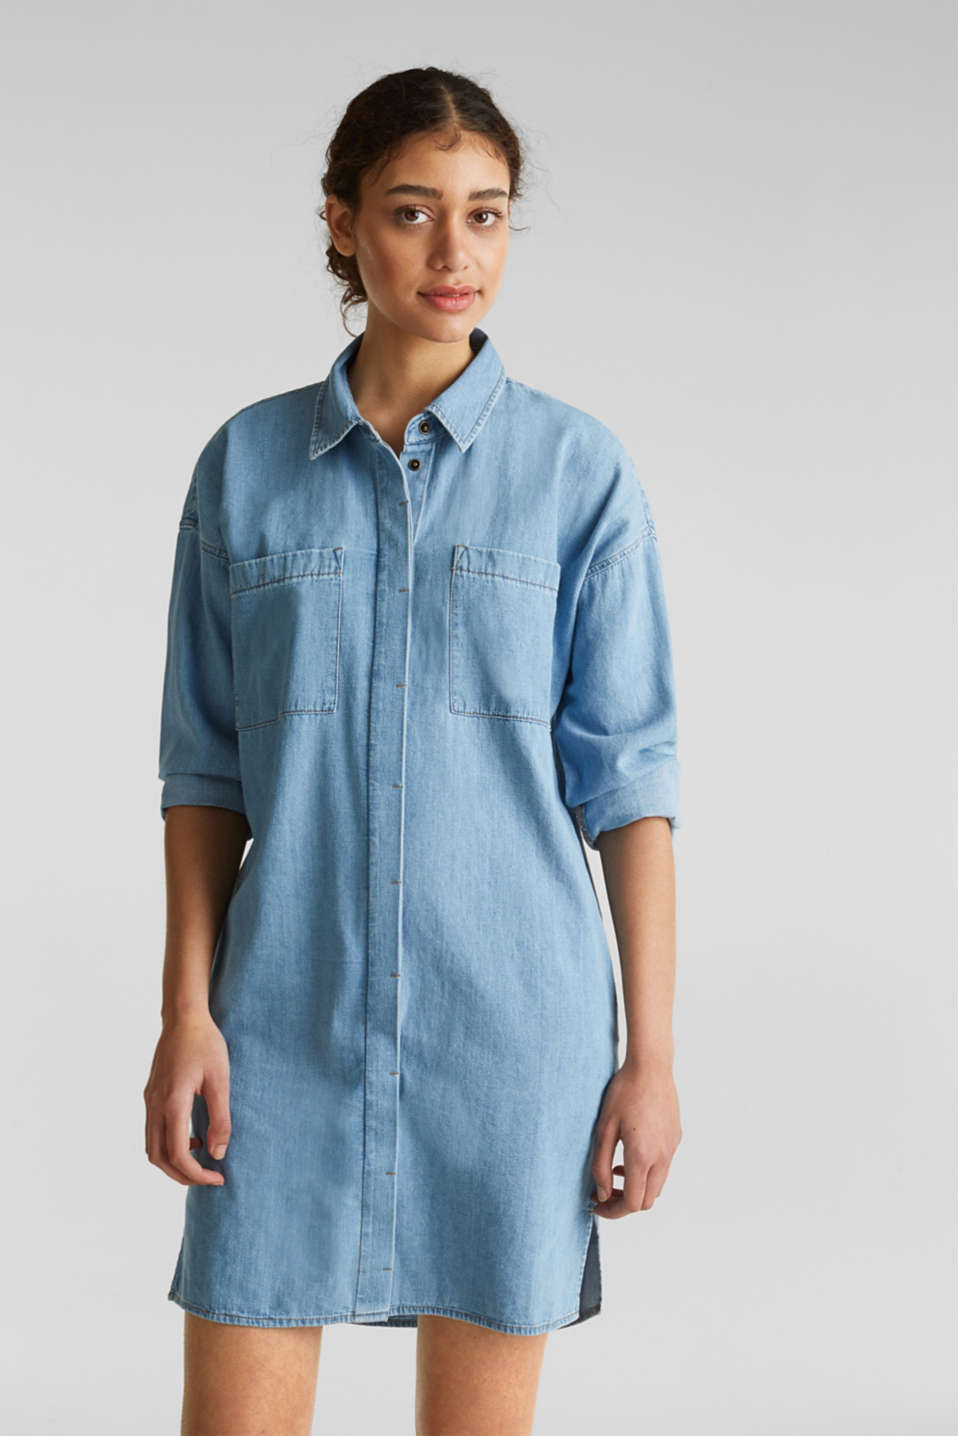 100% cotton denim shirt dress, BLUE LIGHT WASH, detail image number 5